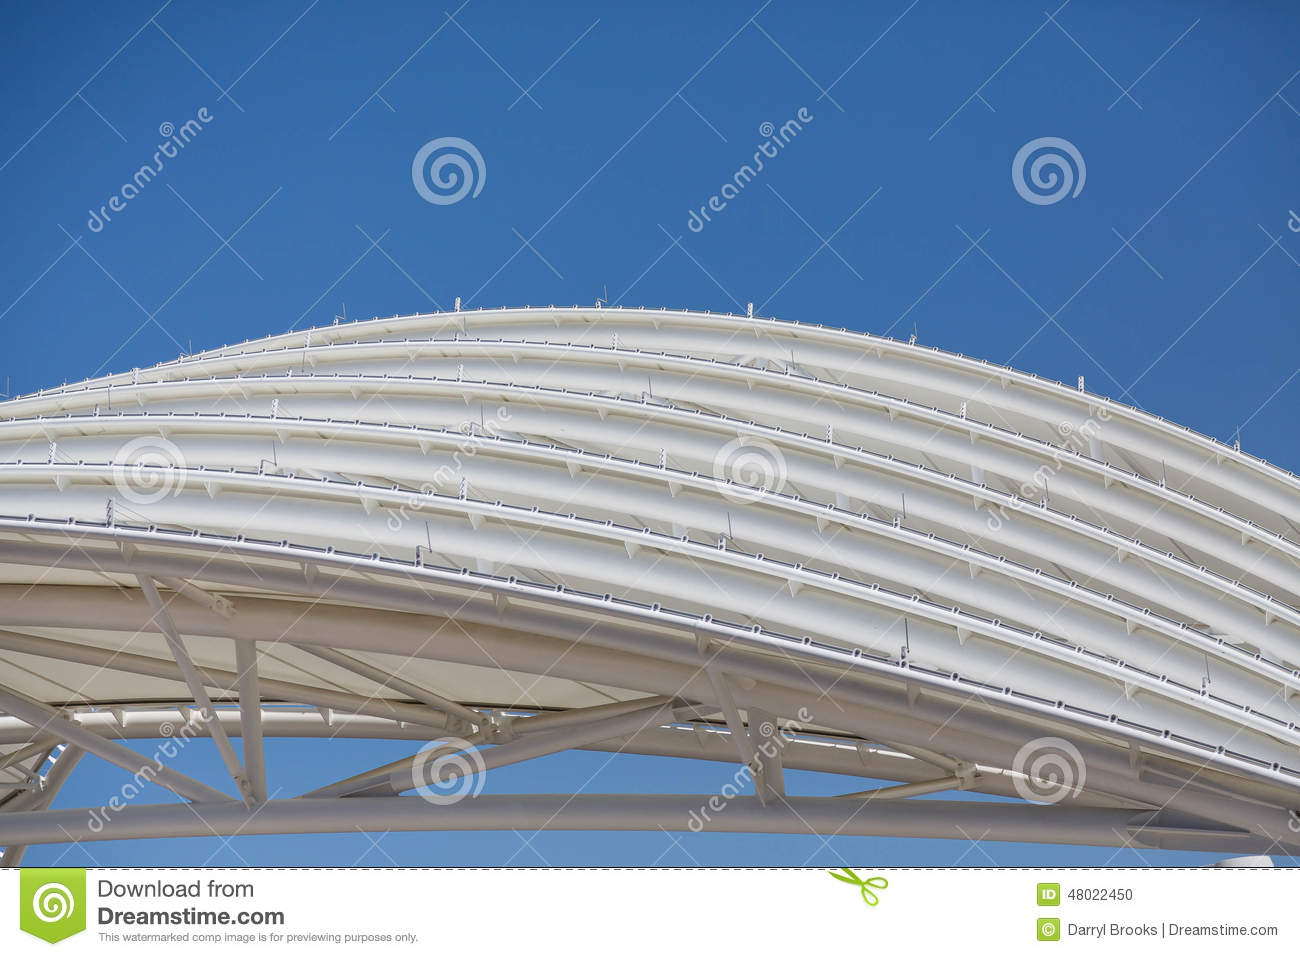 Curved Architecture White Curved Steel Roof Stock Photo Image 48022450